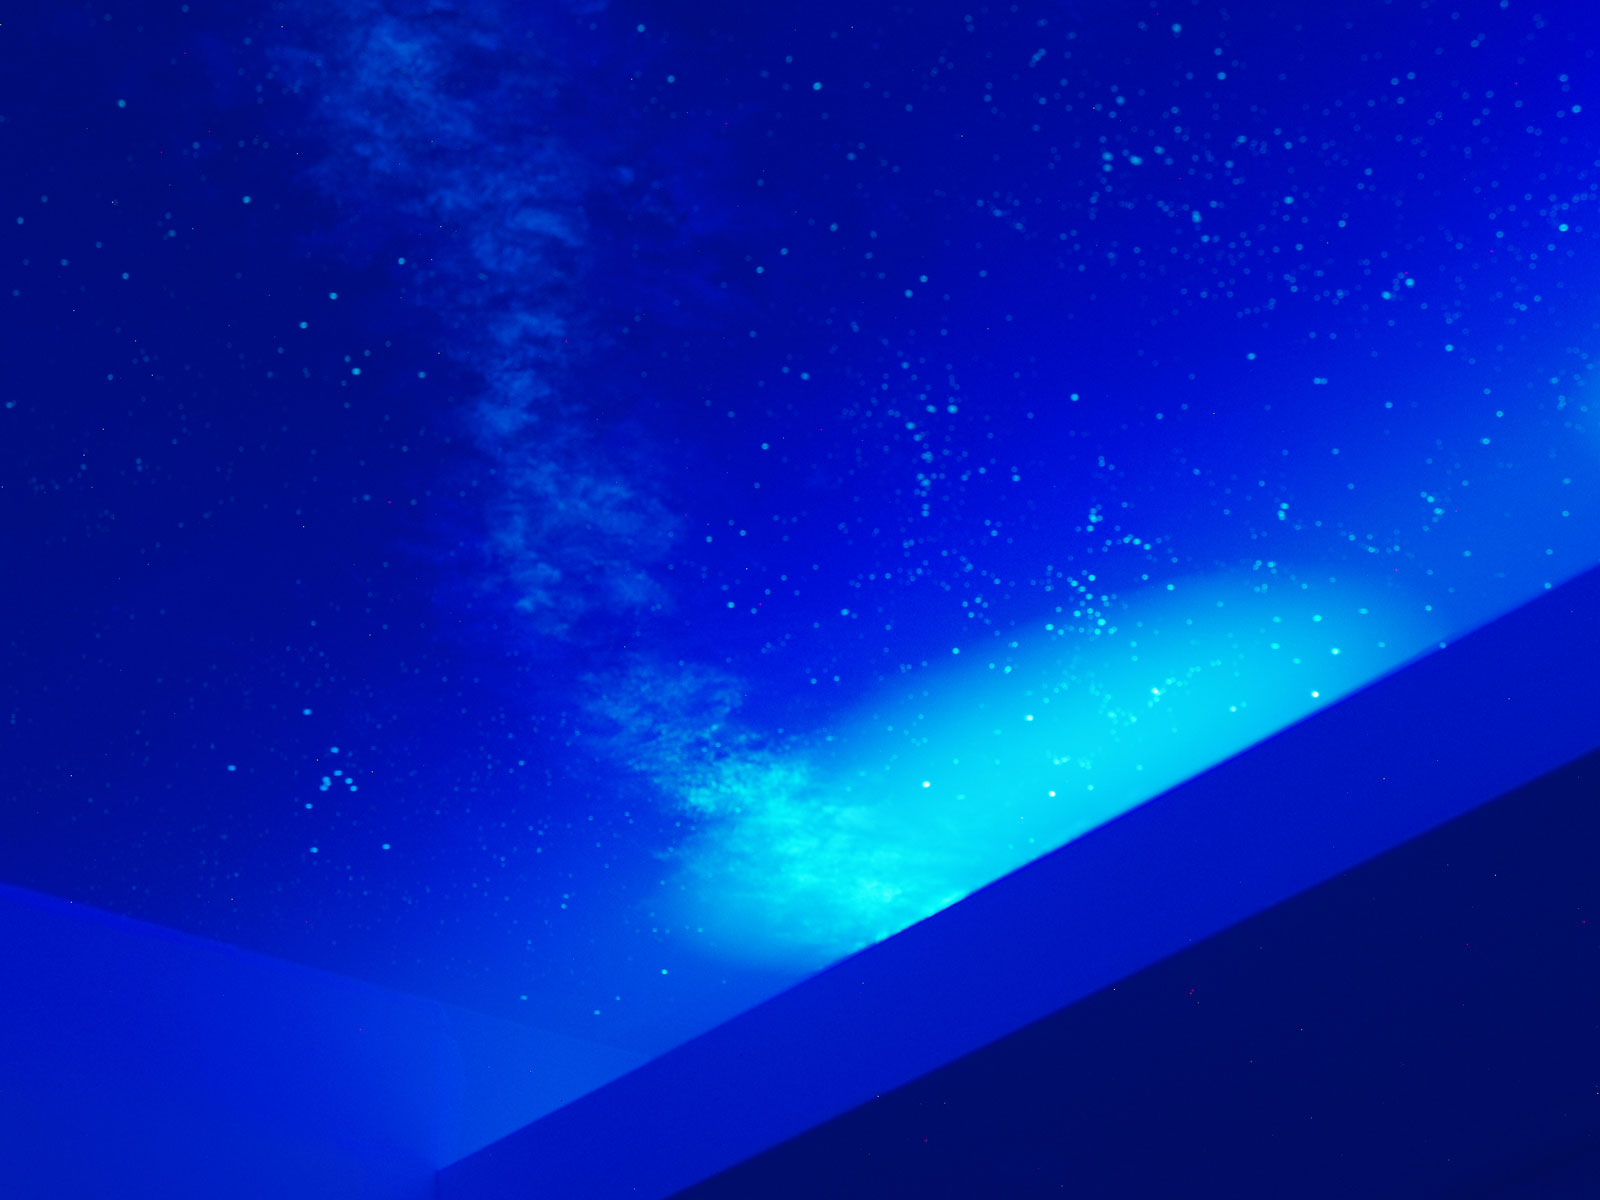 Night Light With Stars On Ceiling Outer Space Murals By Visionary Mural Co Glow In The Dark